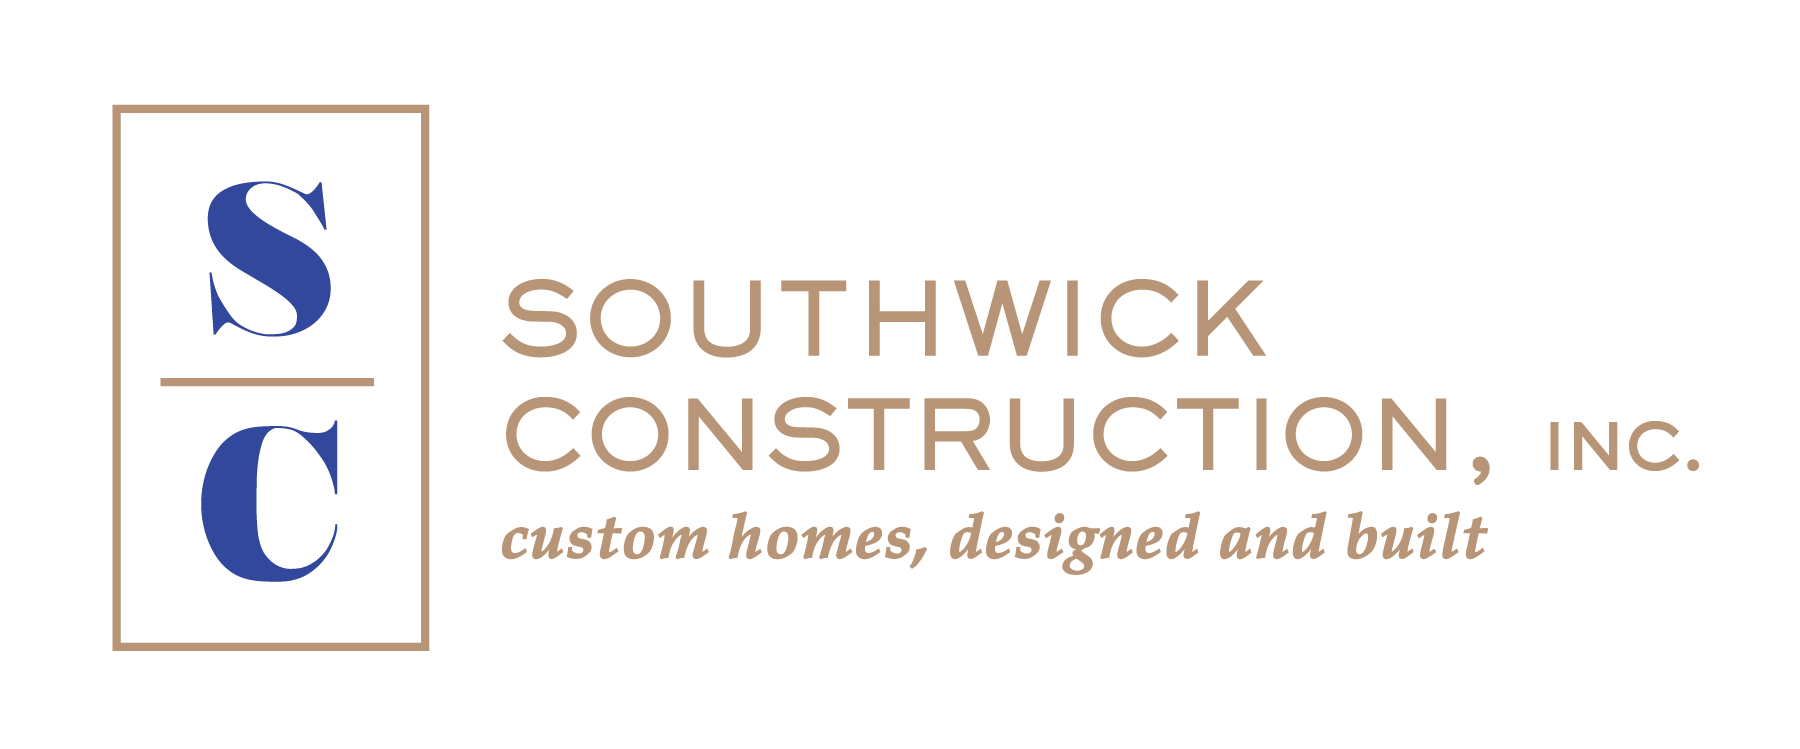 SouthwickConstruction_Logo_Full_Thicker-01.png